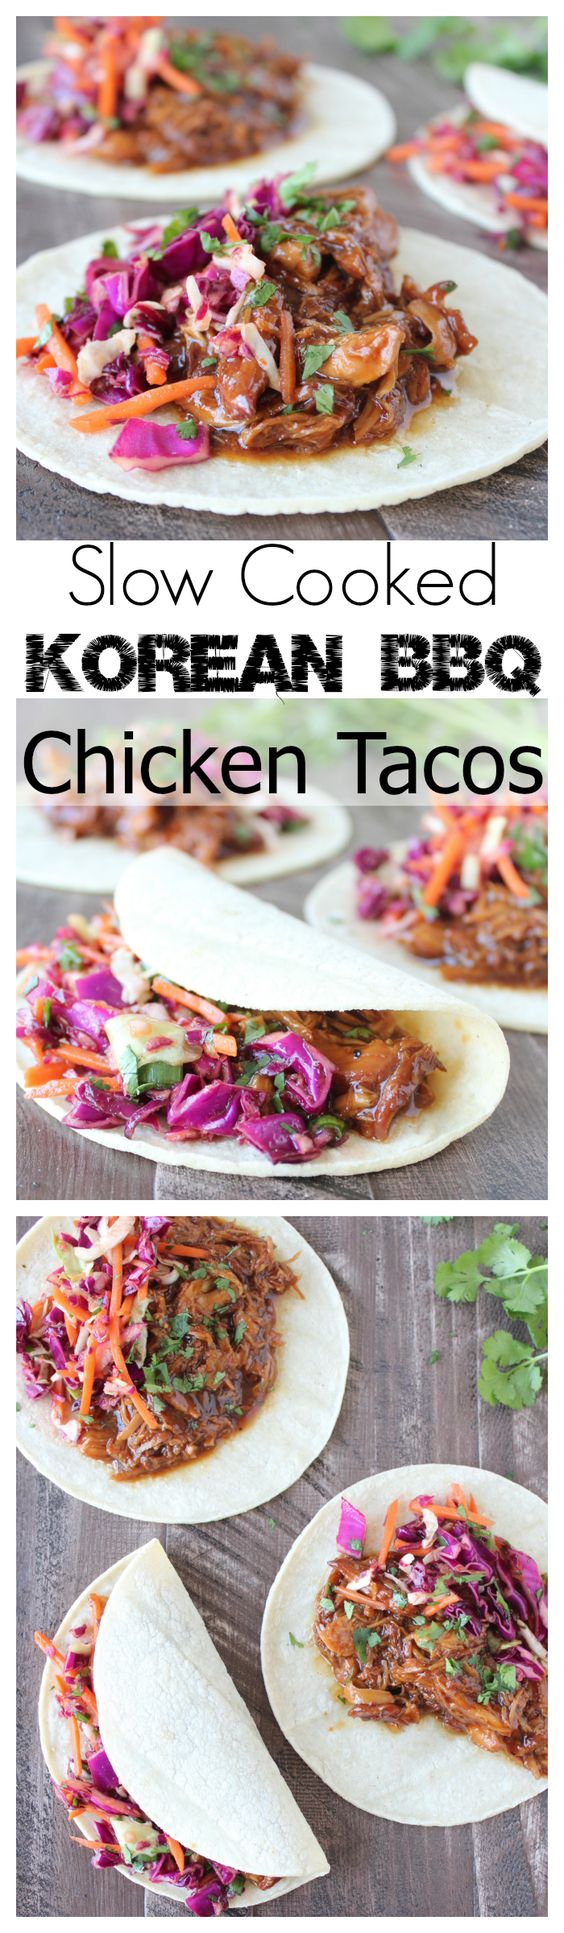 Chicken breasts are slow cooked in the best Korean BBQ Sauce ever, shredded & added to tacos with homemade sweet & spicy Asian Slaw for total taco deliciousness with less than 30 minutes of prep!